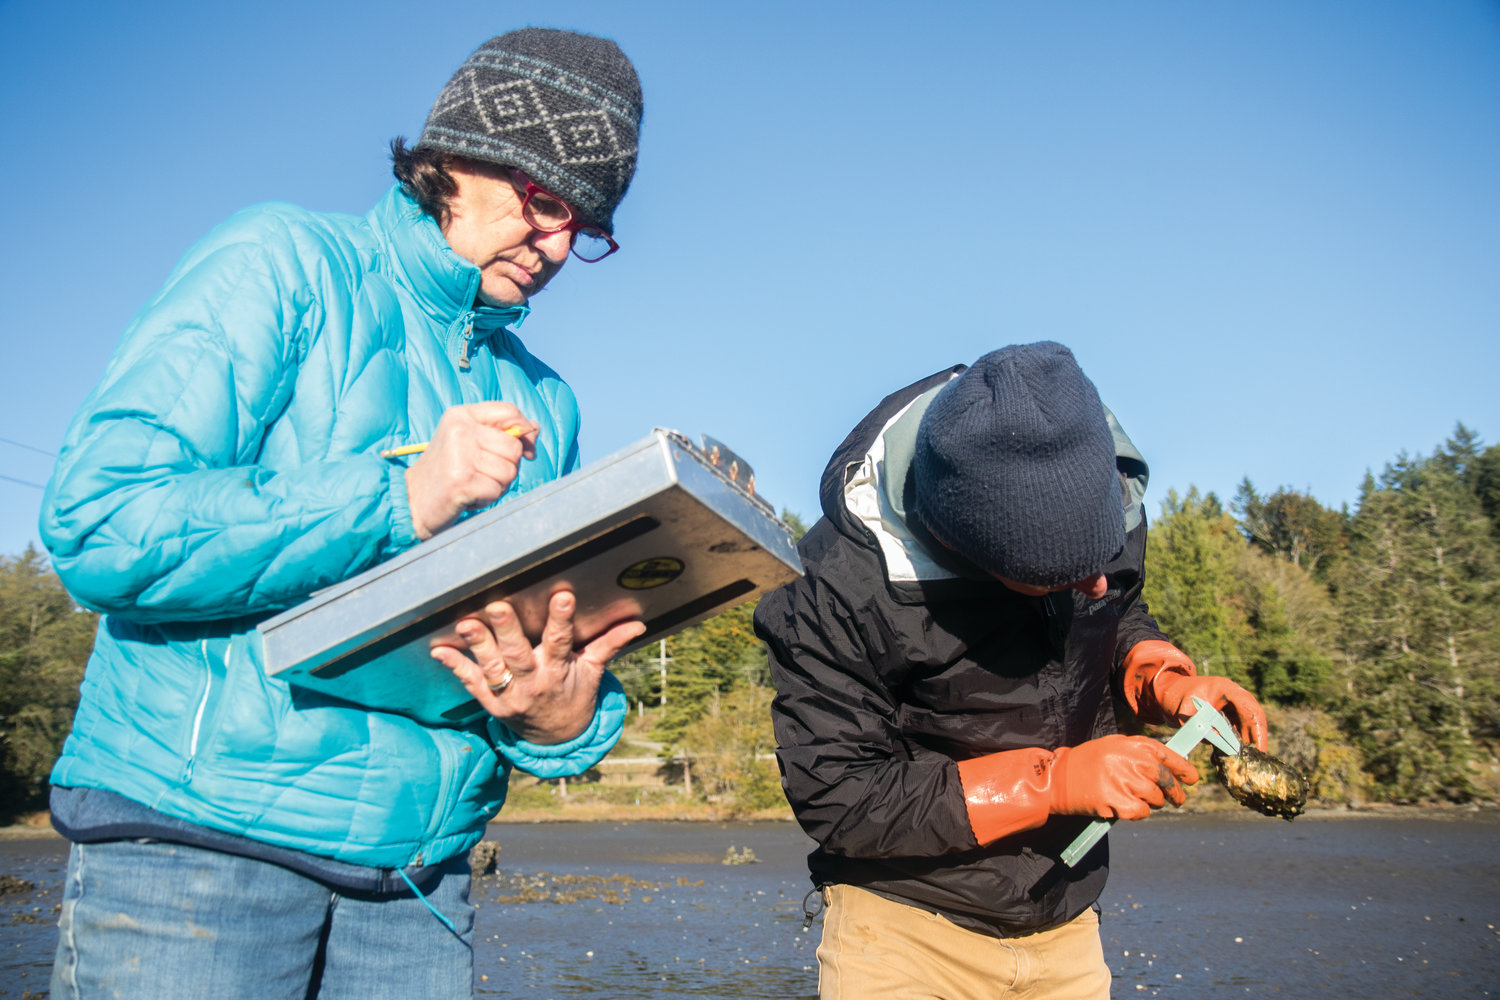 Marine Resource Committee member Sarah Fisken takes down the data as Neil Harrington measures Olympia oyster spat growing on Pacific oyster shells that MRC volunteers spread throughout Discovery Bay in the hopes of providing more surfaces for the oysters to grow on.